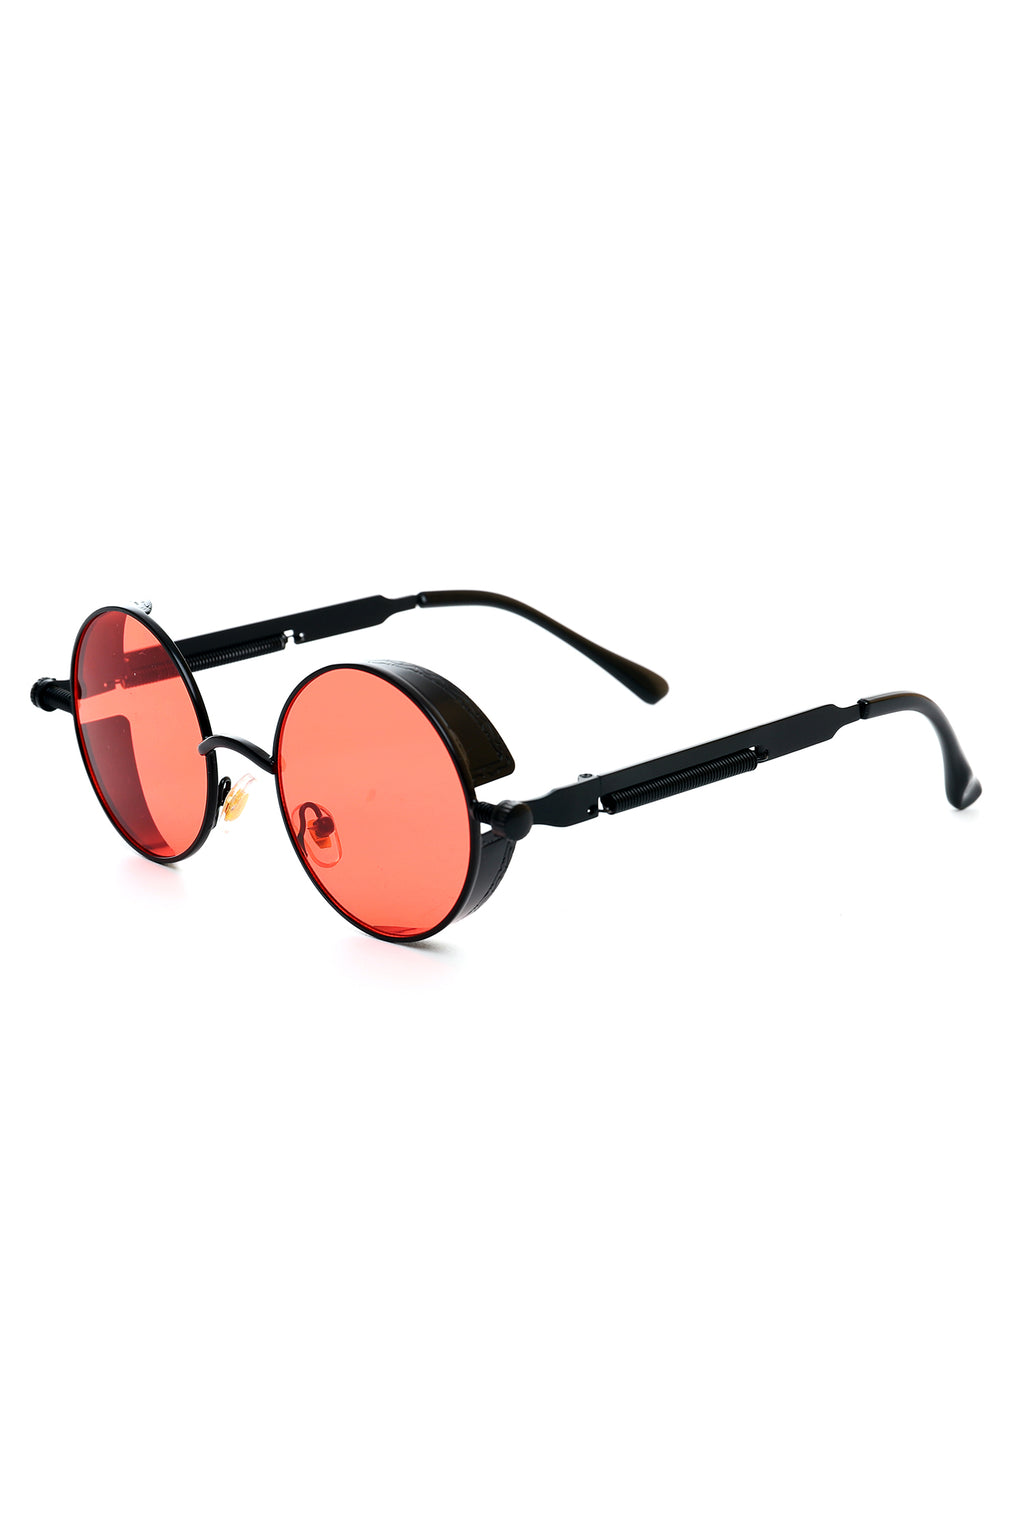 RETRO SUNGLASSES-PINK